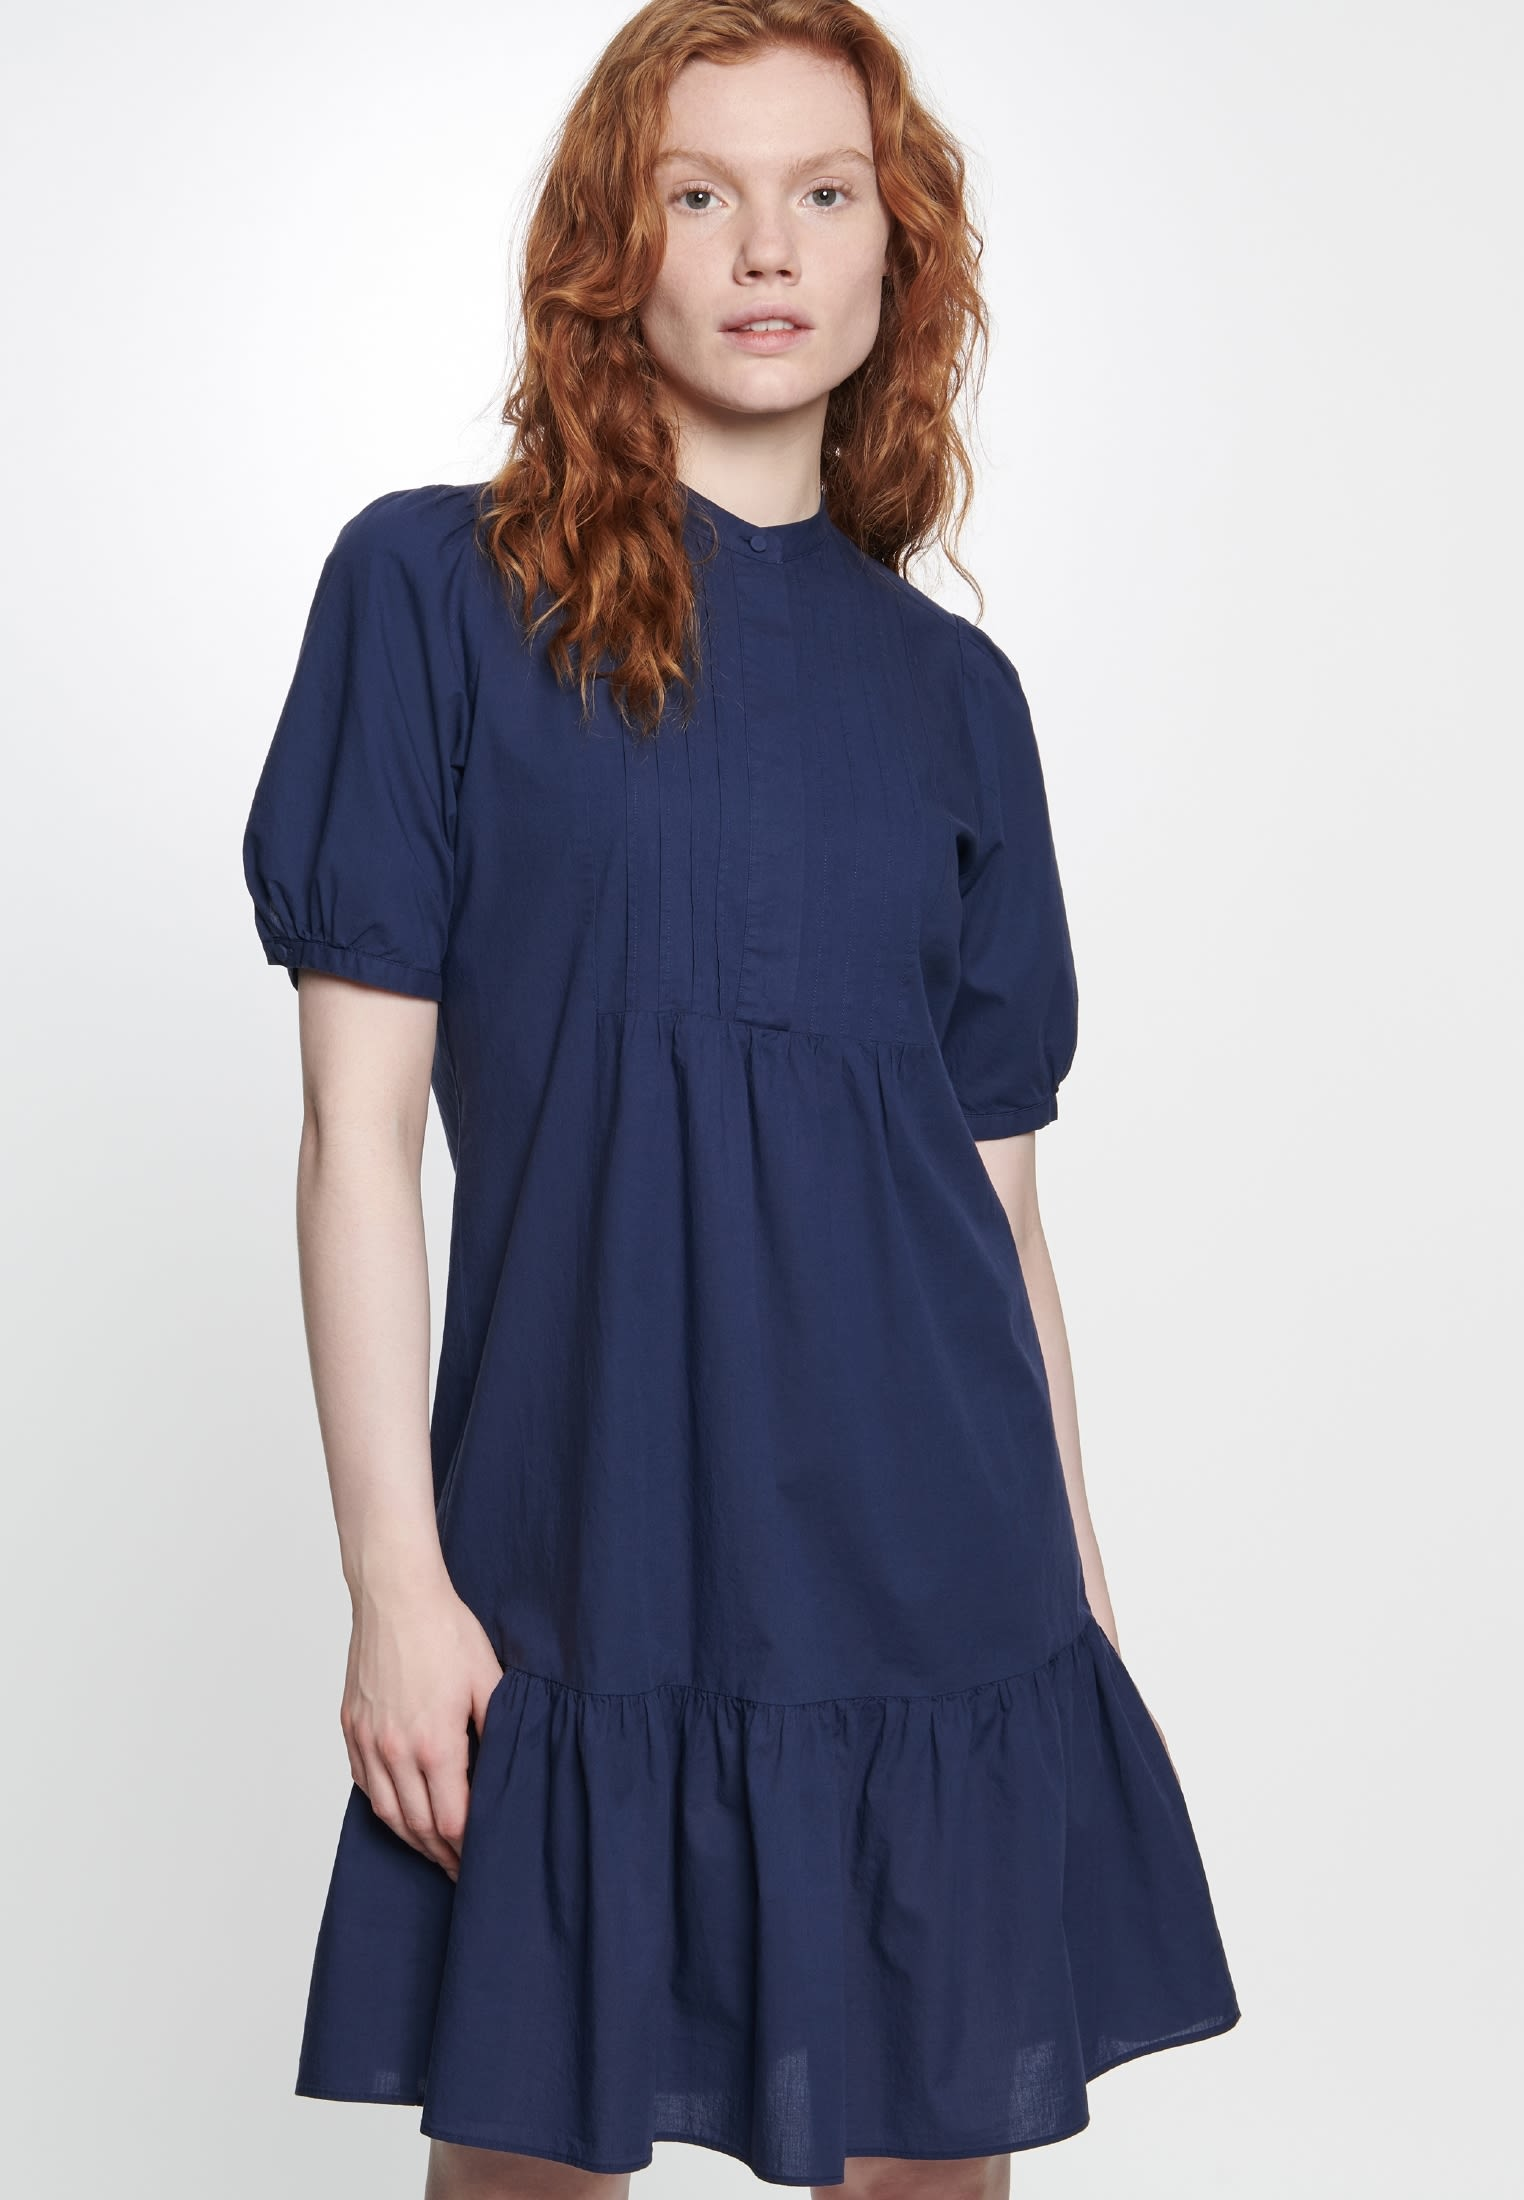 Short arm Voile Dress made of 100% Cotton in marine |  Seidensticker Onlineshop